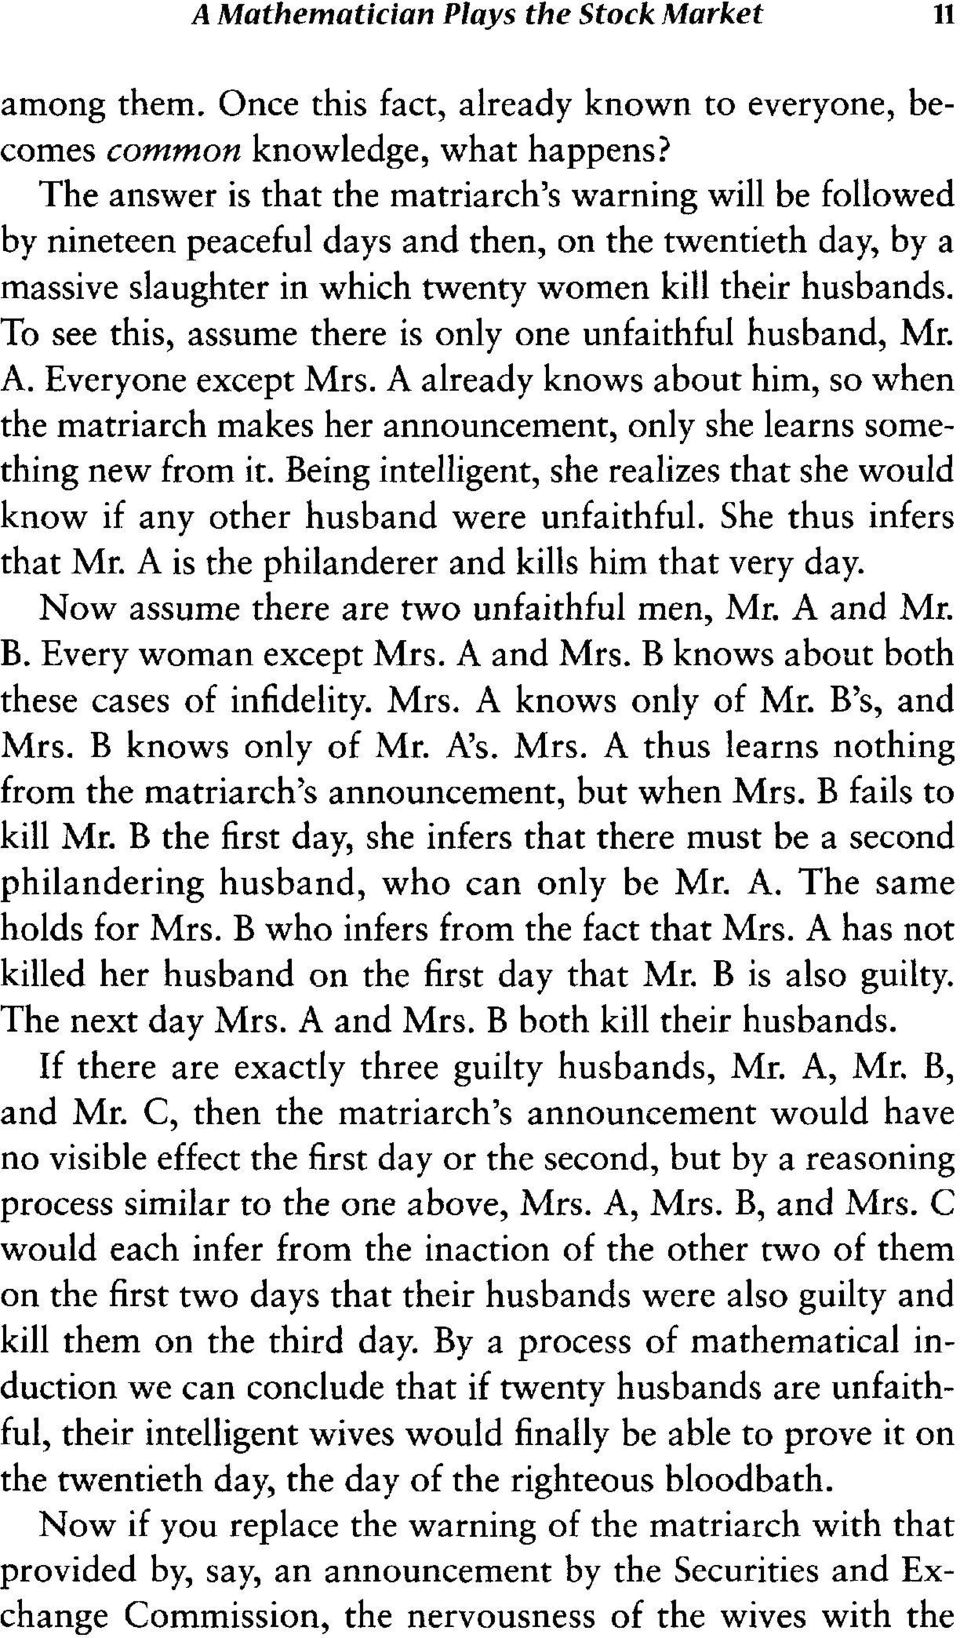 To see this, assume there is only one unfaithful husband, Mr. A. Everyone except Mrs. A already knows about him, so when the matriarch makes her announcement, only she learns something new from it.